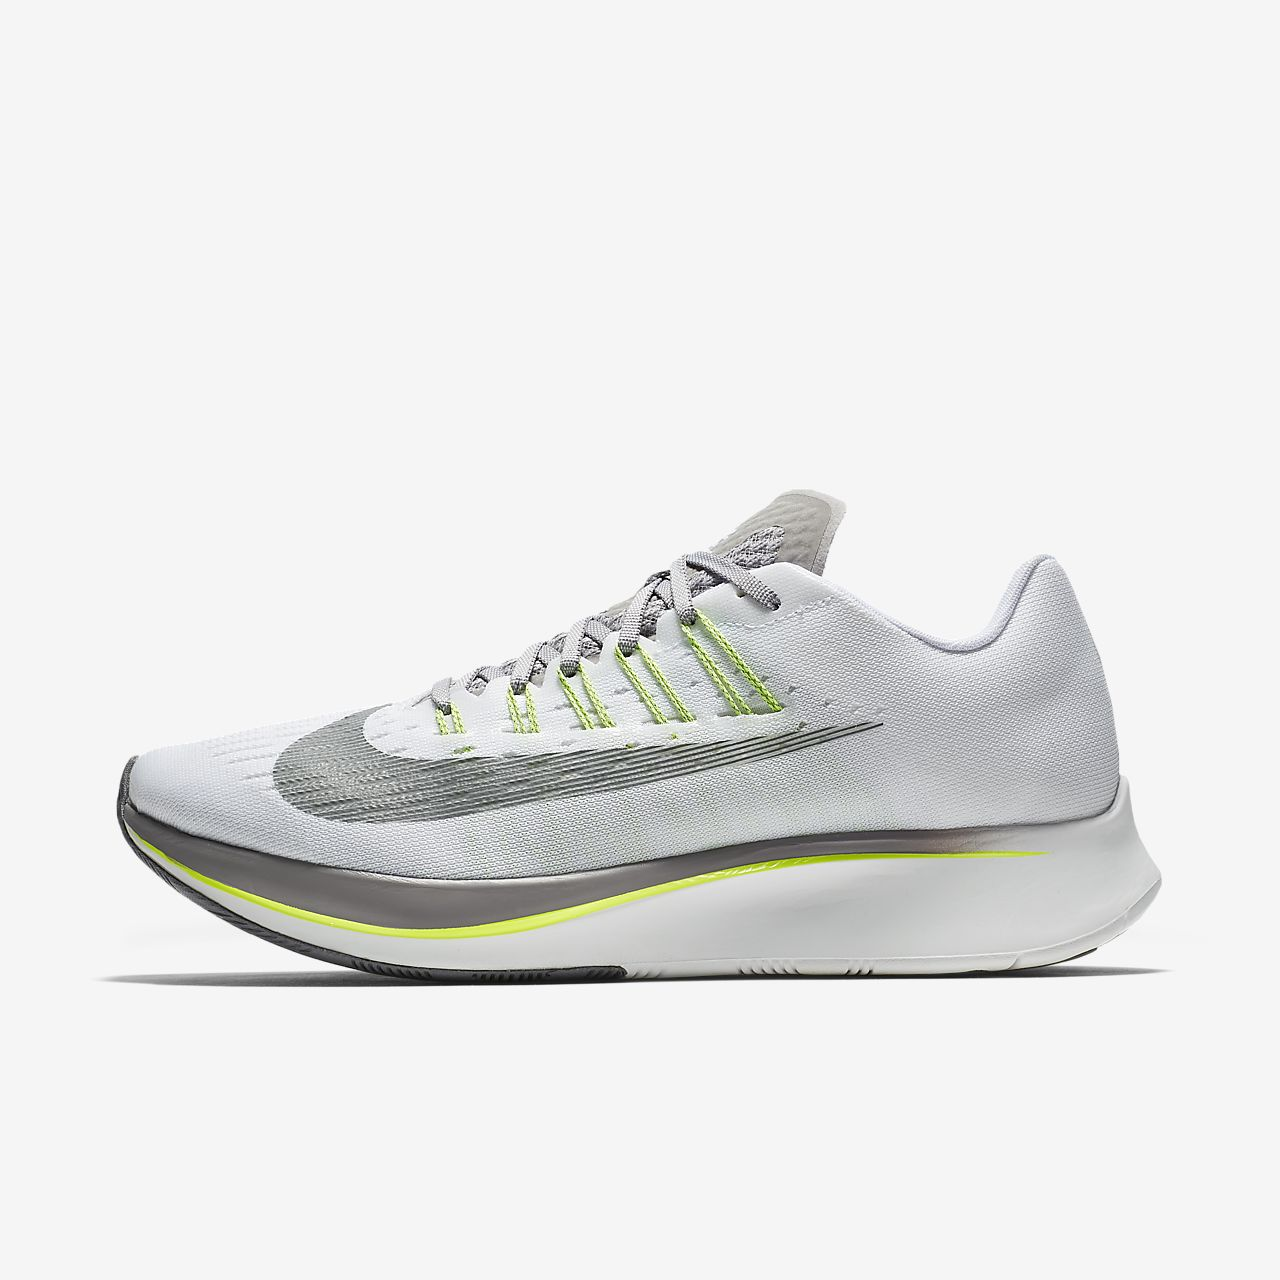 sports shoes 18010 82d71 ... Nike Zoom Fly Men s Running Shoe